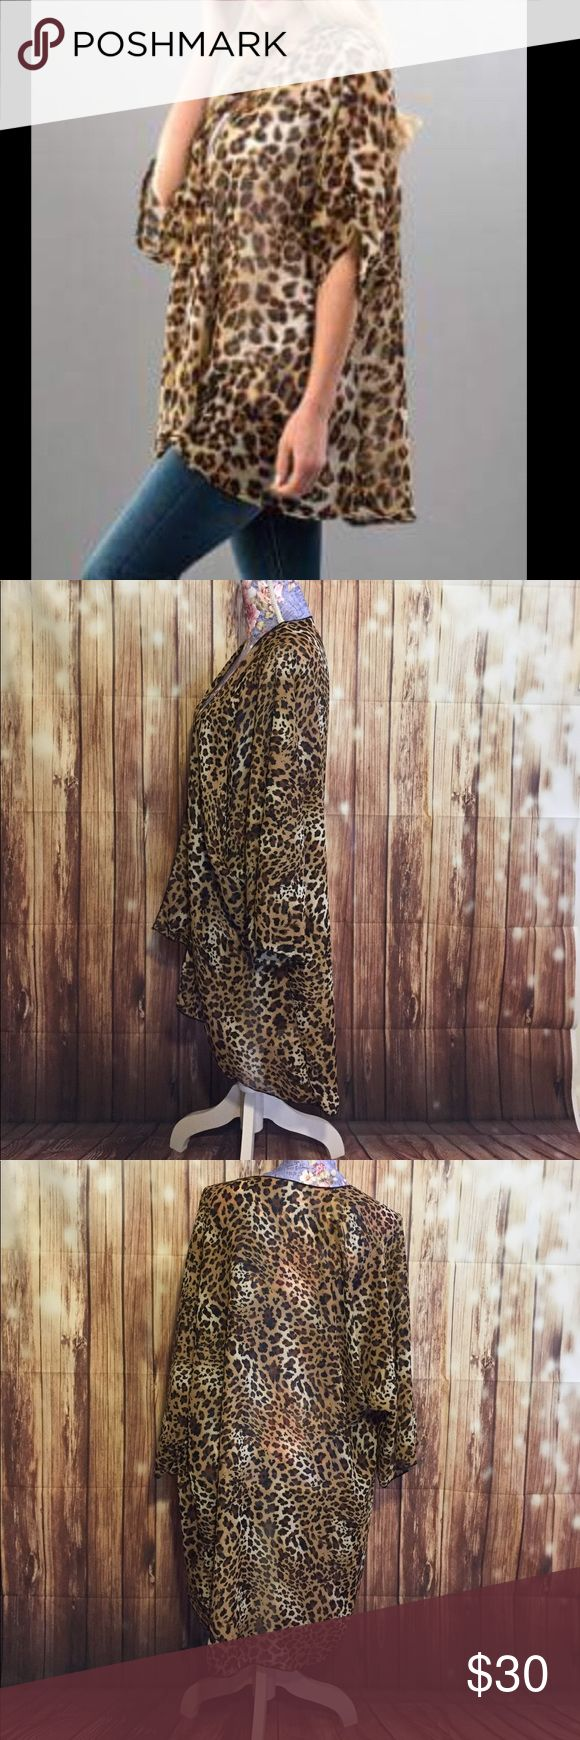 Sheer leopard print Cardigan NWT Leopard print Cardigan that is sheer. It is longer in the back and would look great with leggings! Made in the USA. 100% Polyester. BOUTIQUE Tops